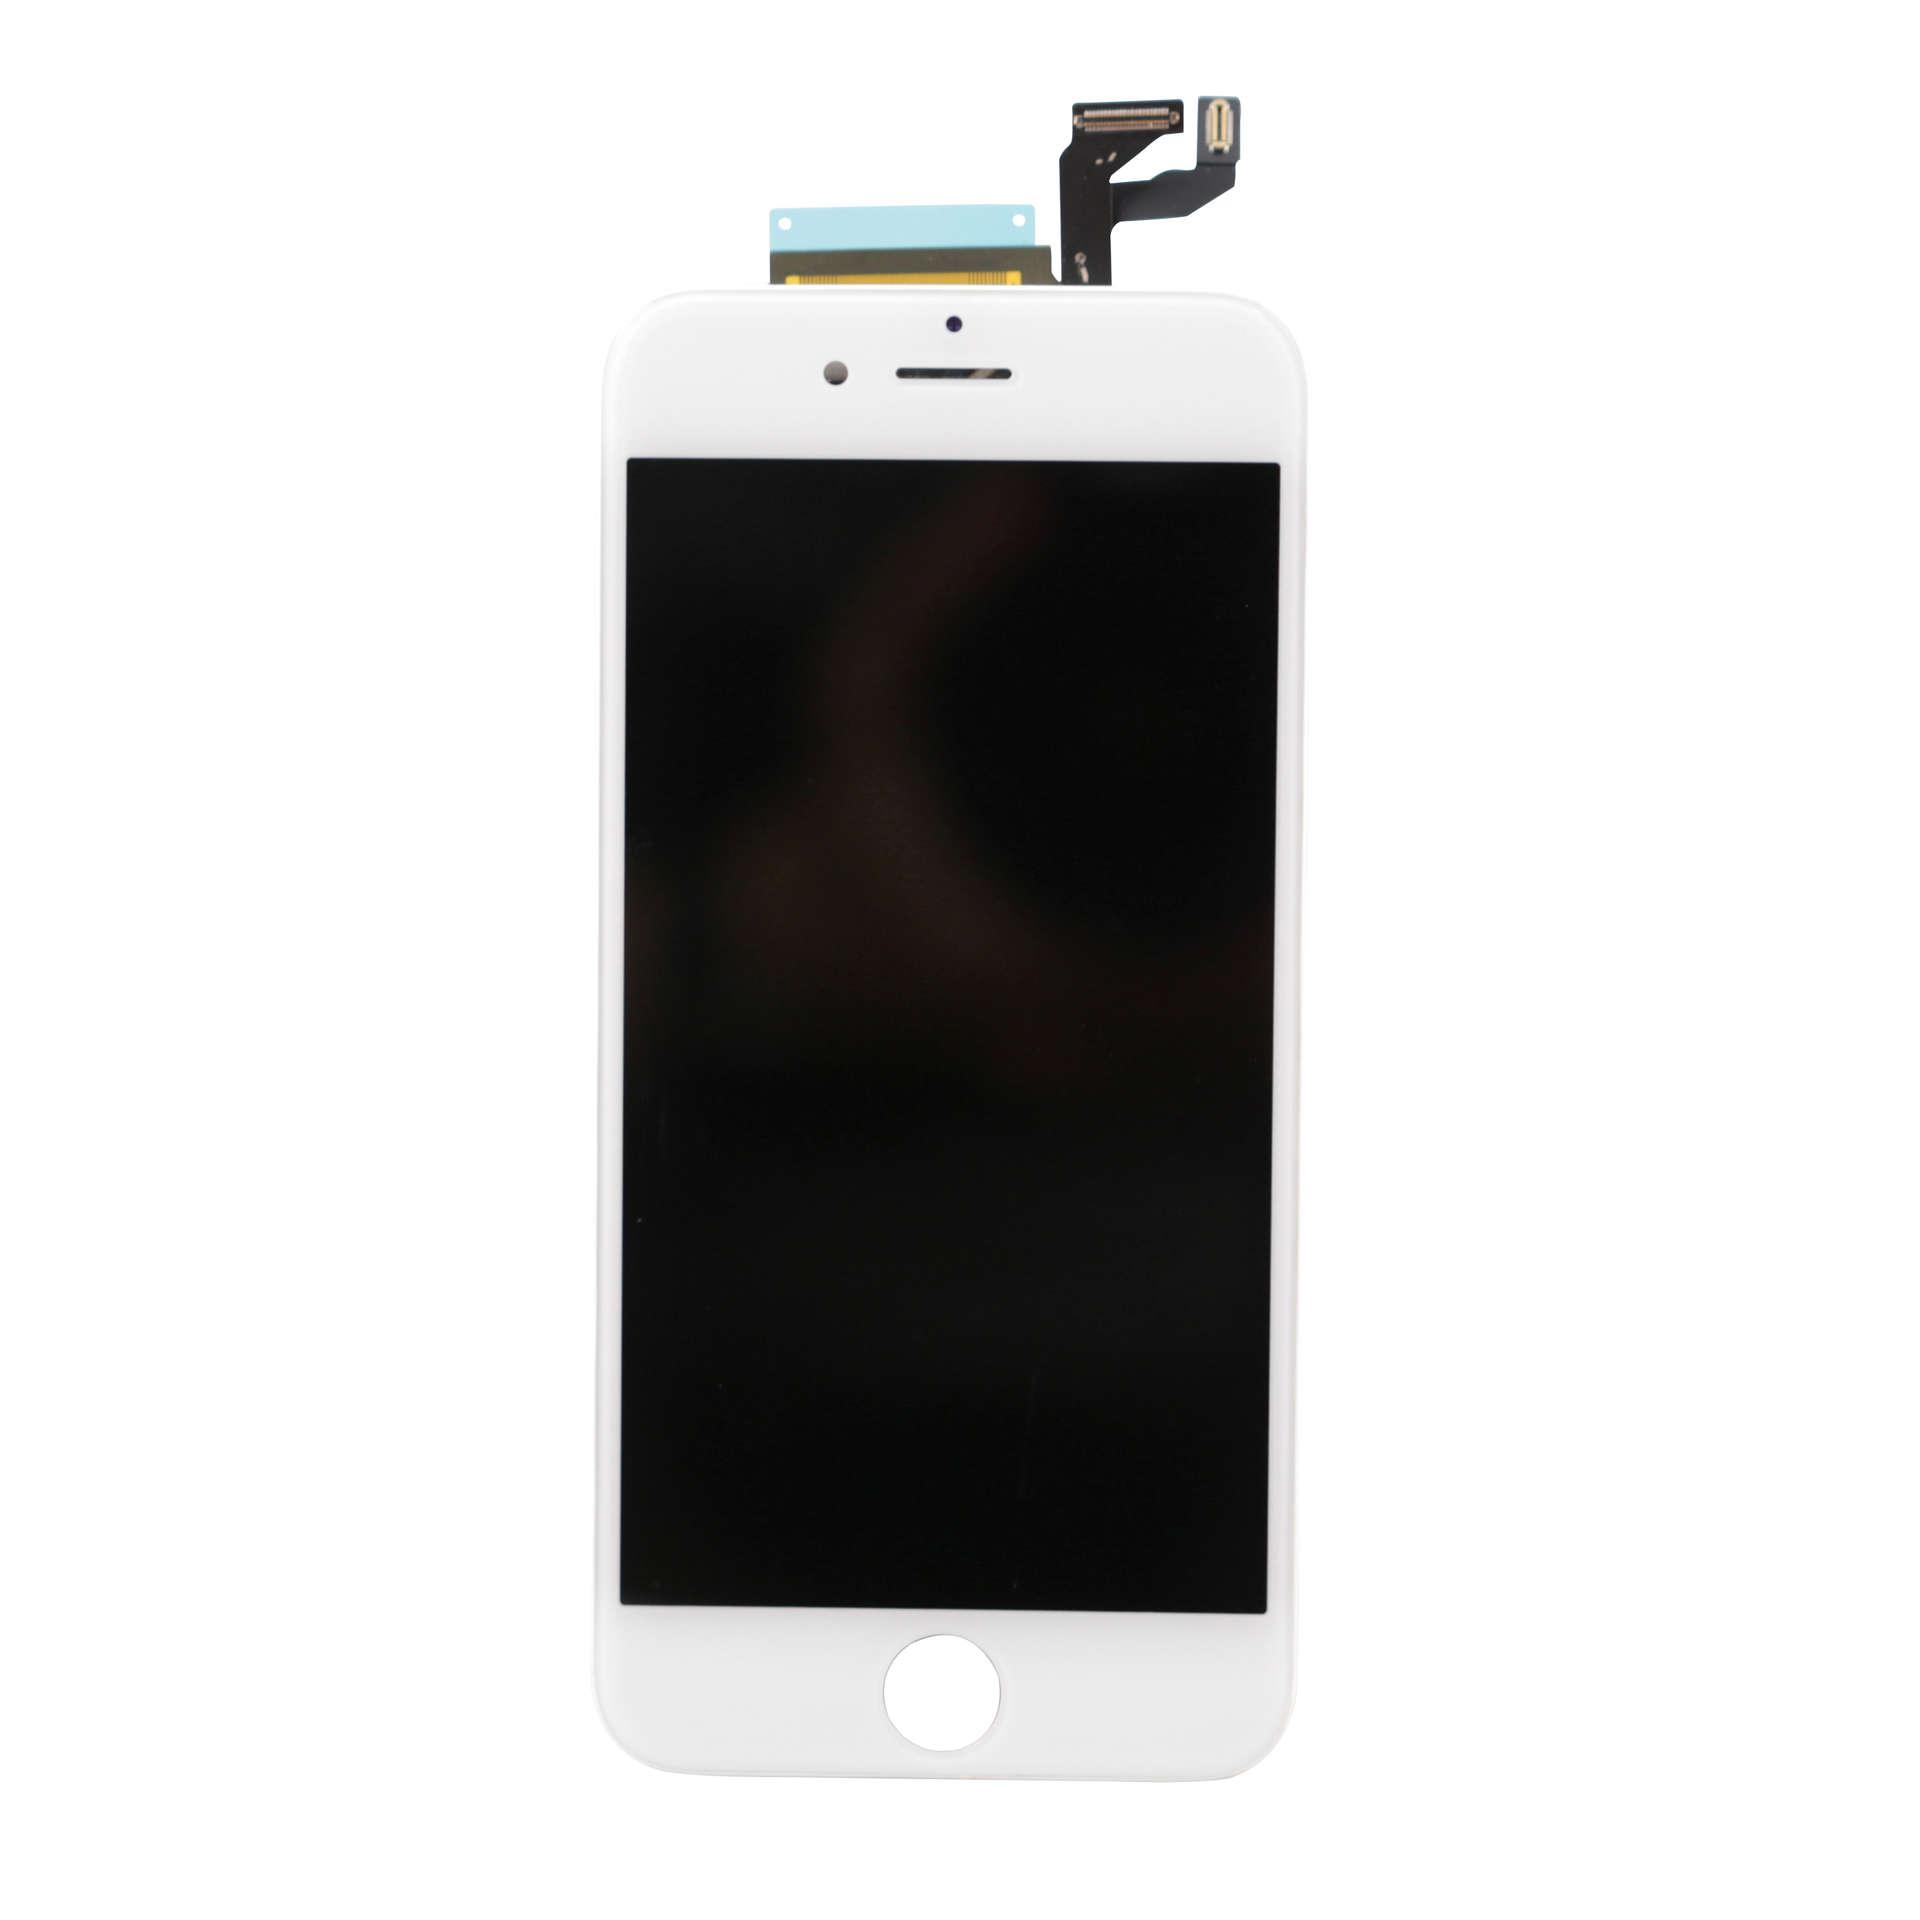 Lcd IPhone 6 6G 4.7Inch Layar & Touchscreen Digitizer Glass Display Kualitas Original Bergaransi